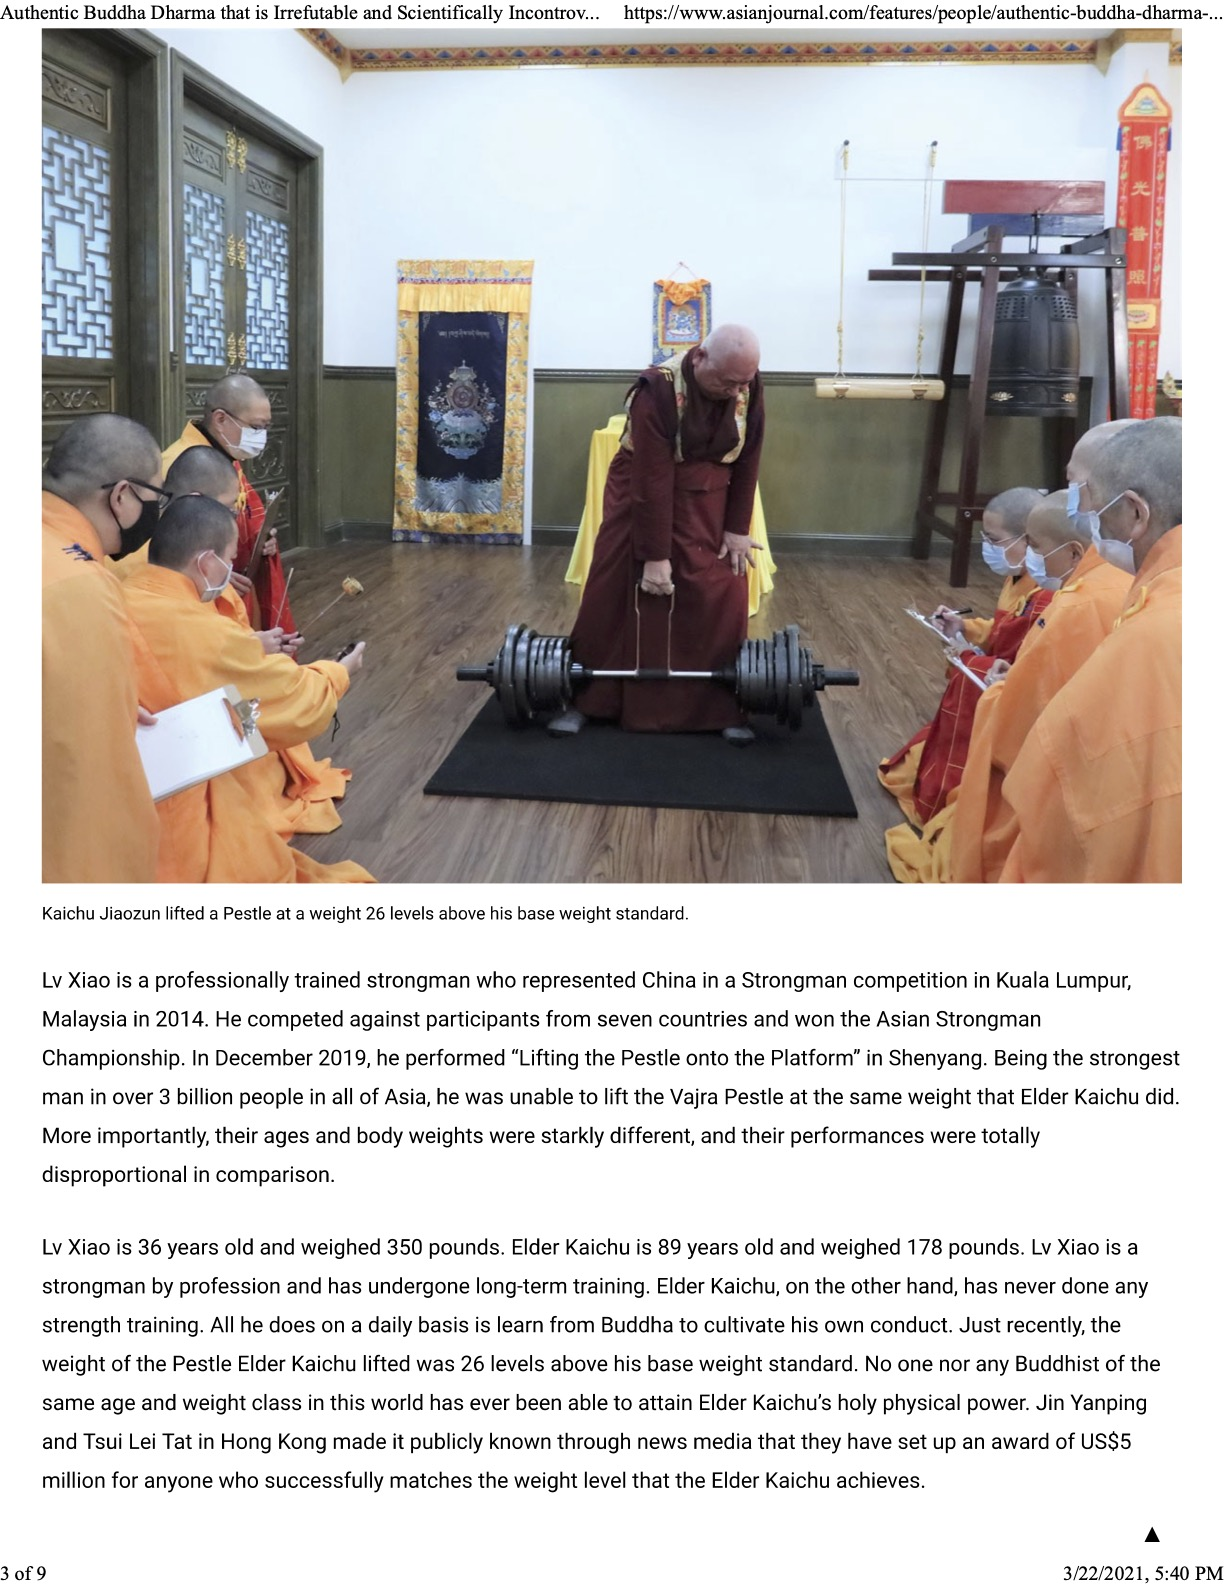 page2 -Online news AJ_Authentic Buddha Dharma that is Irrefutable and Scientifically Incontrovertible_3-20-2021